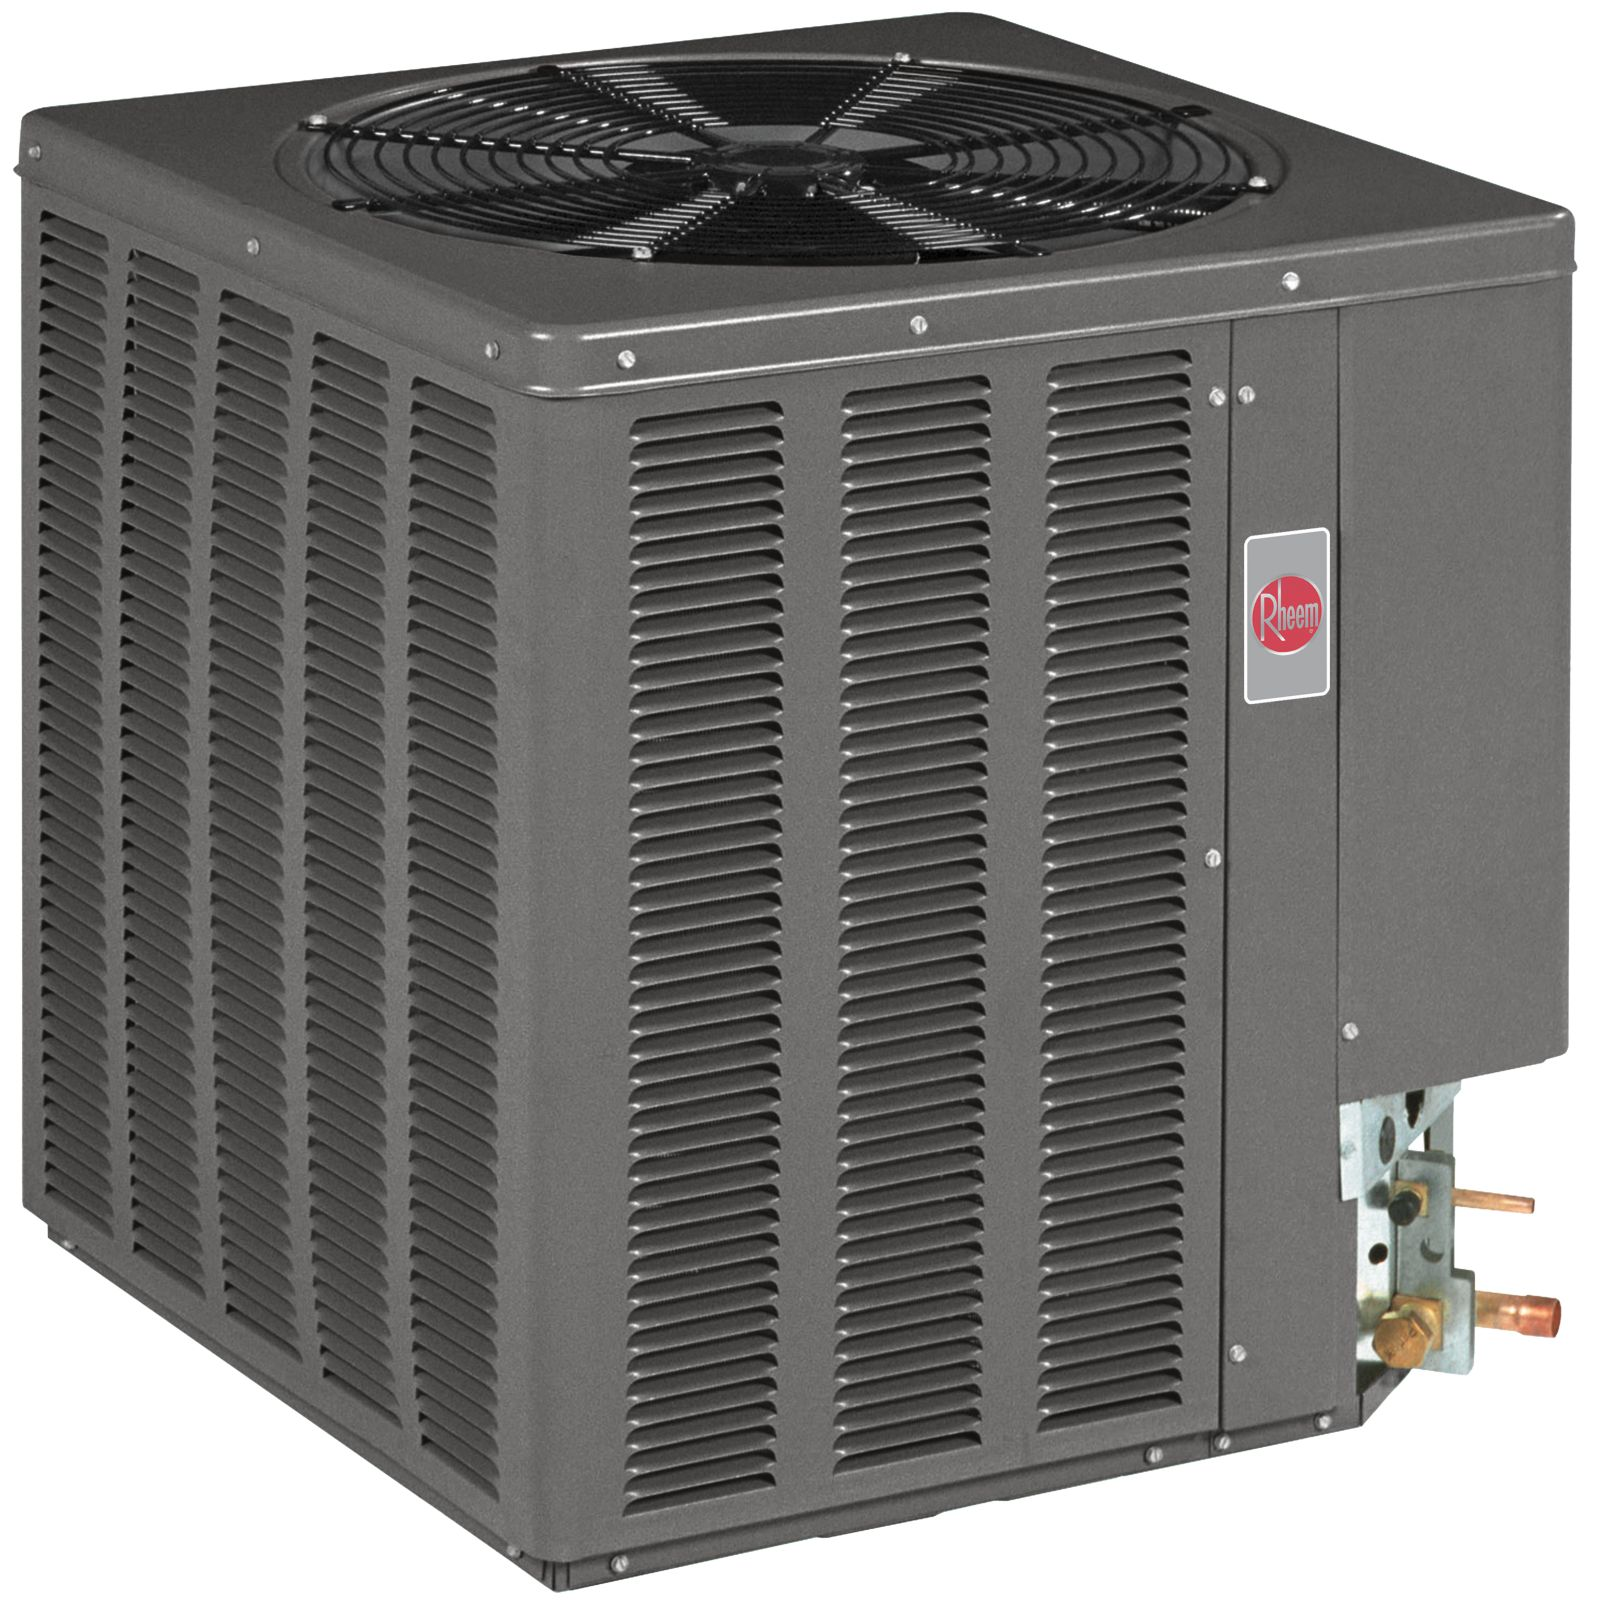 Rheem 14AJM30A01 - Value Series 2 1/2 Ton, 14 SEER, R410A Air Conditioner Condenser